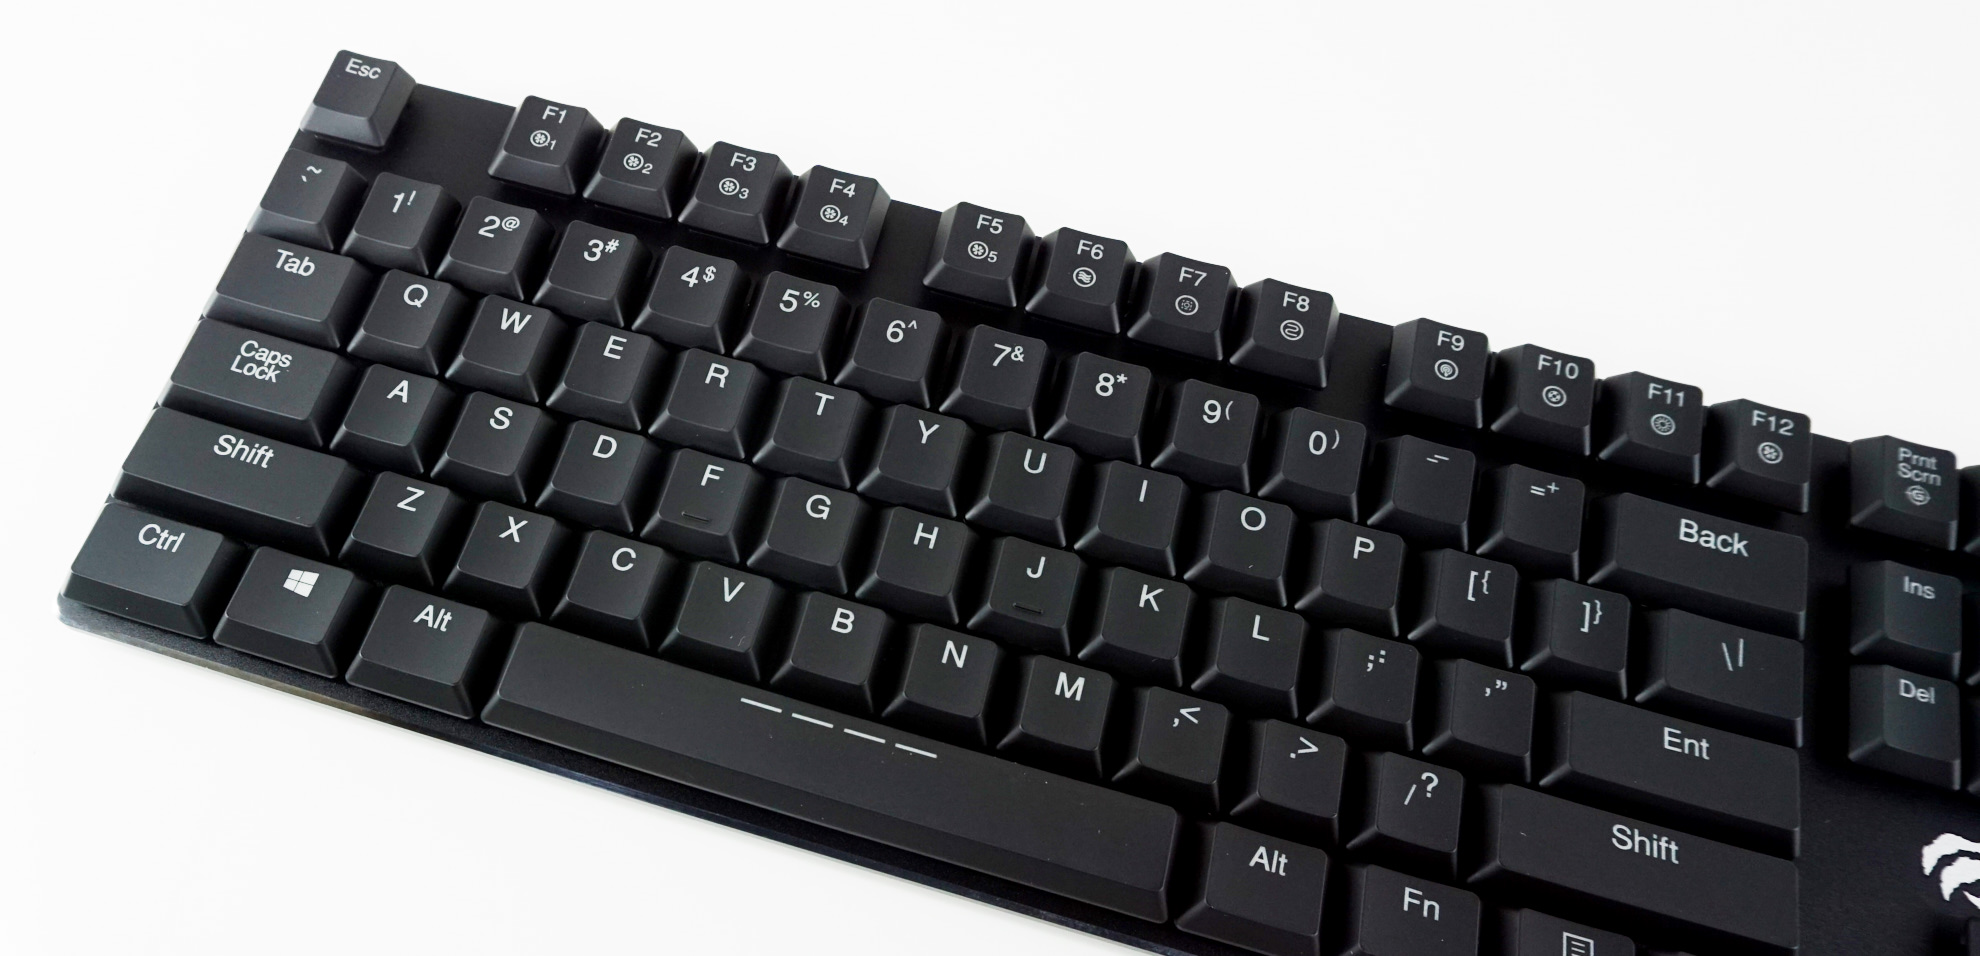 5fd4bc243a7 The HAVIT KB395L has two rear legs that with a single fixed setting. The  tilt is reasonable and the grip of the rubber anti-slip pads is very good,  ...